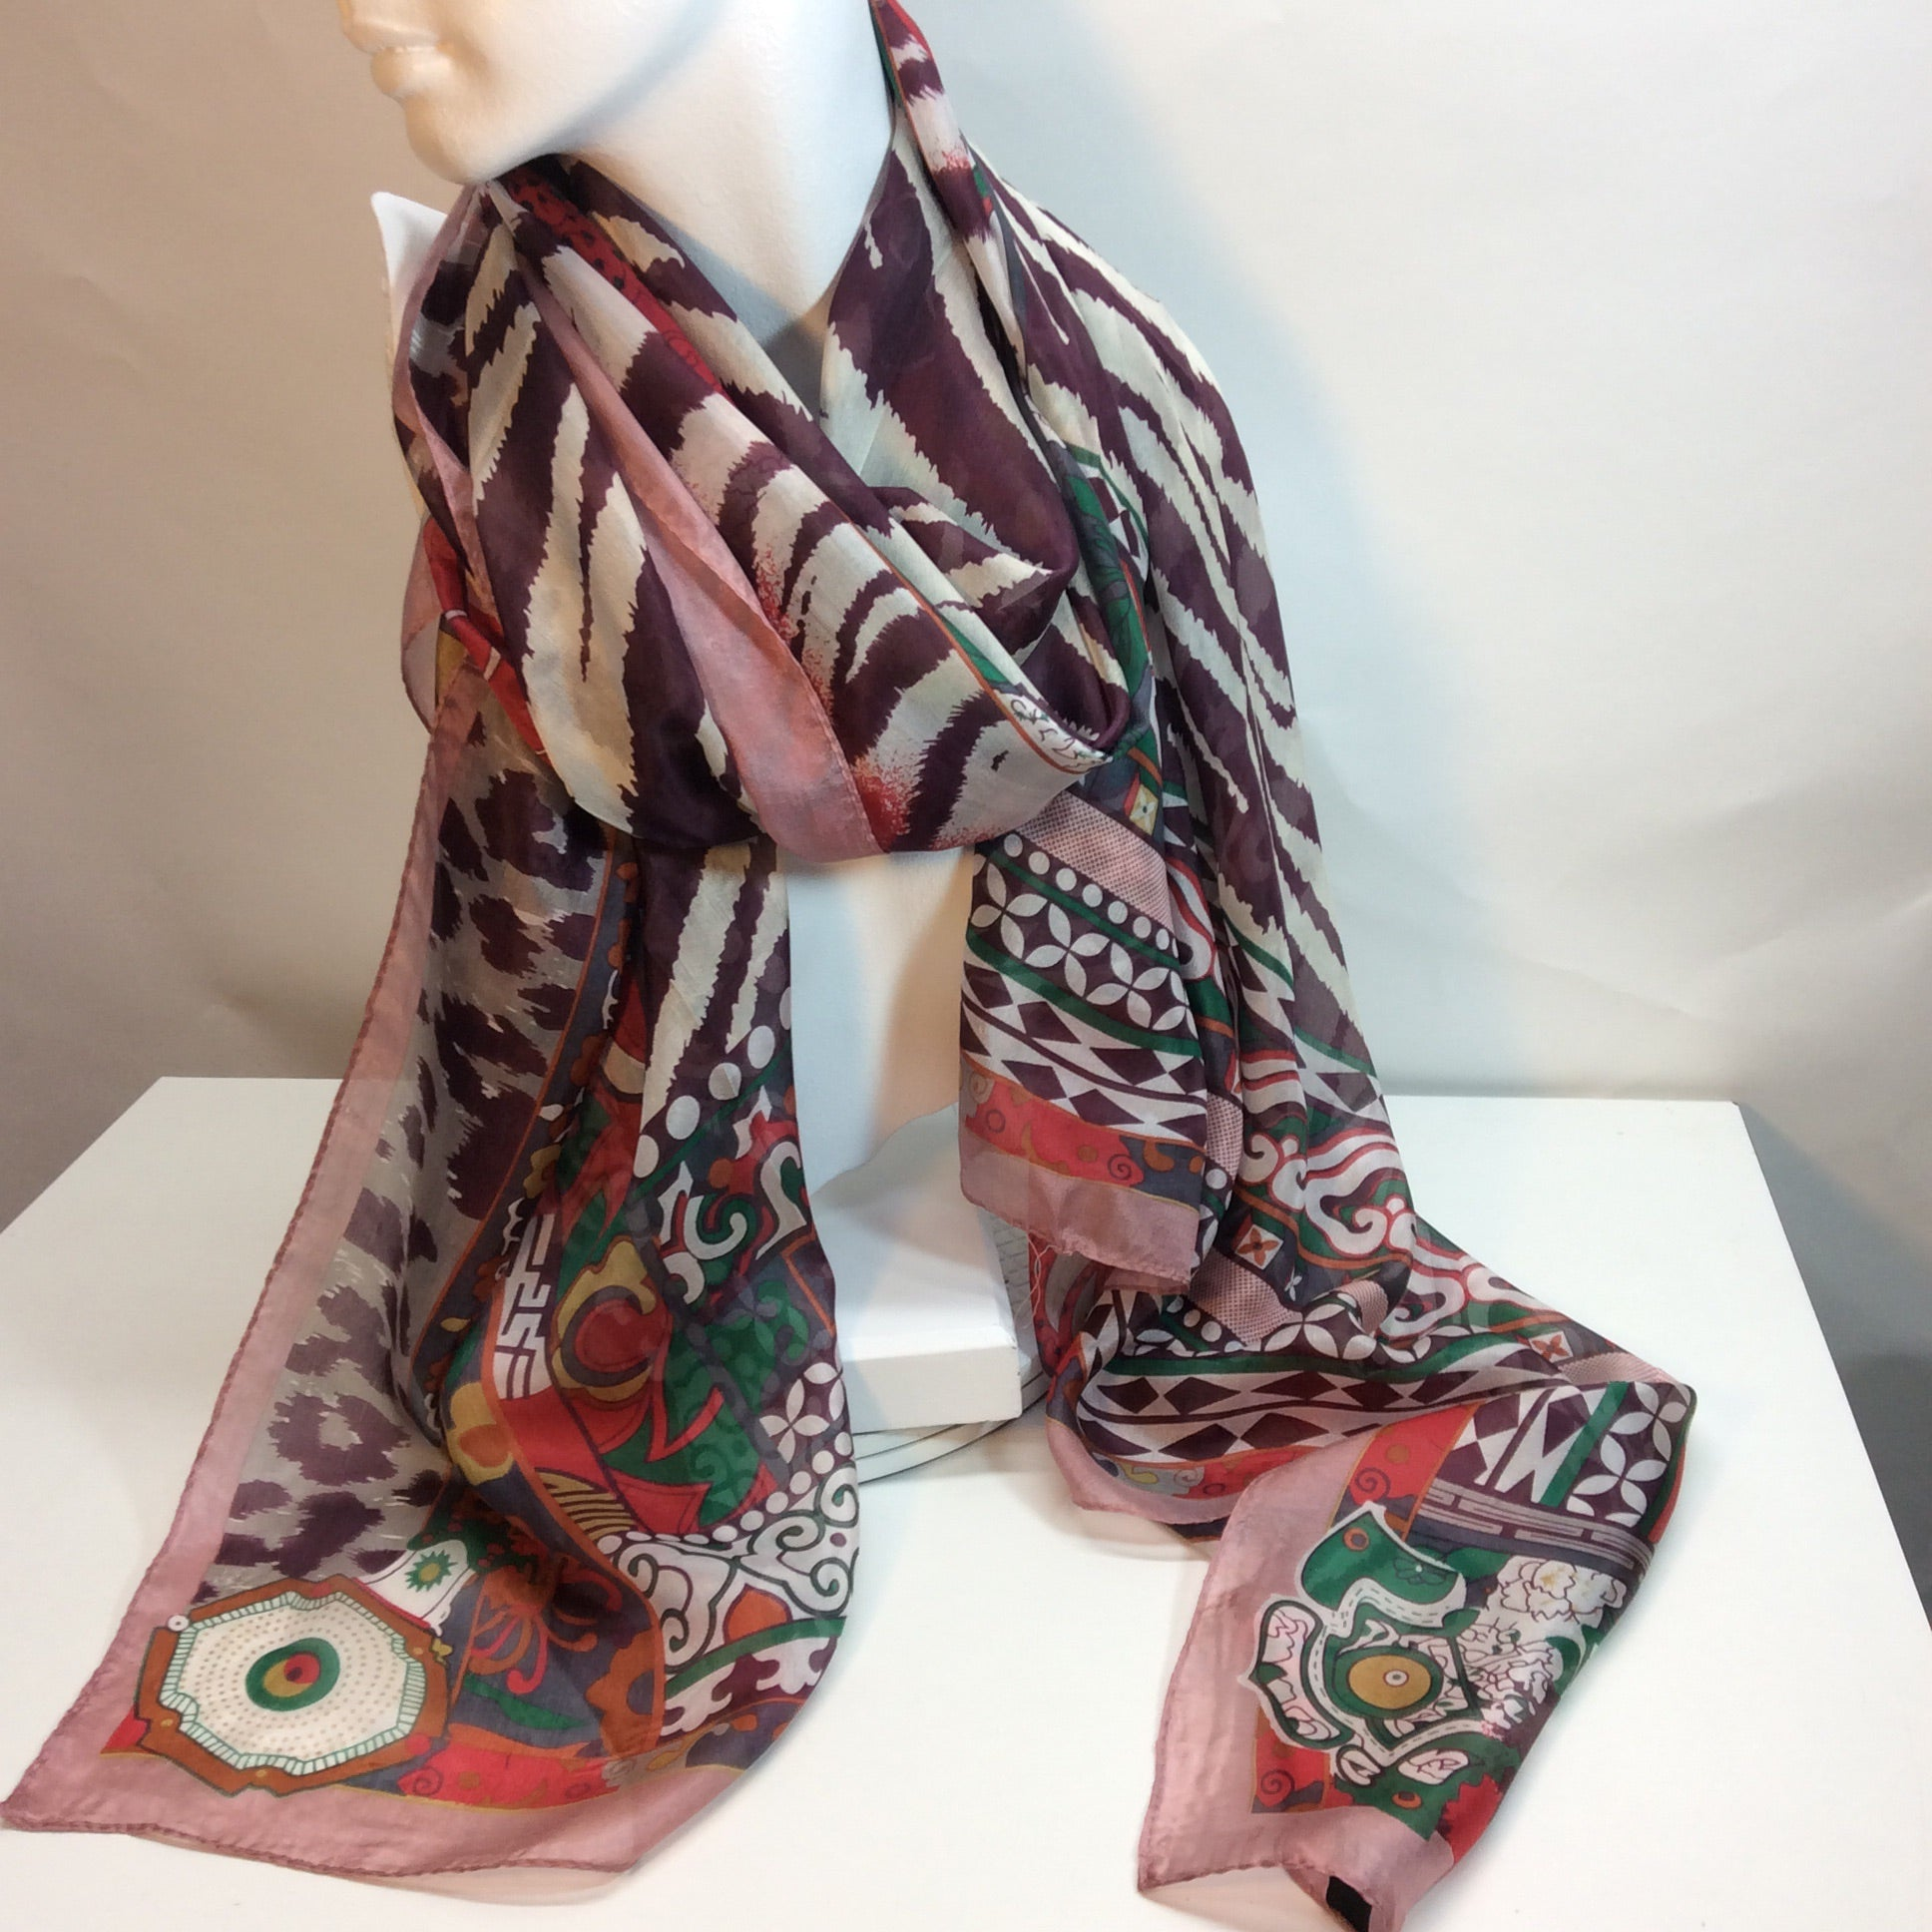 Symmetrical border with animal print centre on this beautiful silk scarf